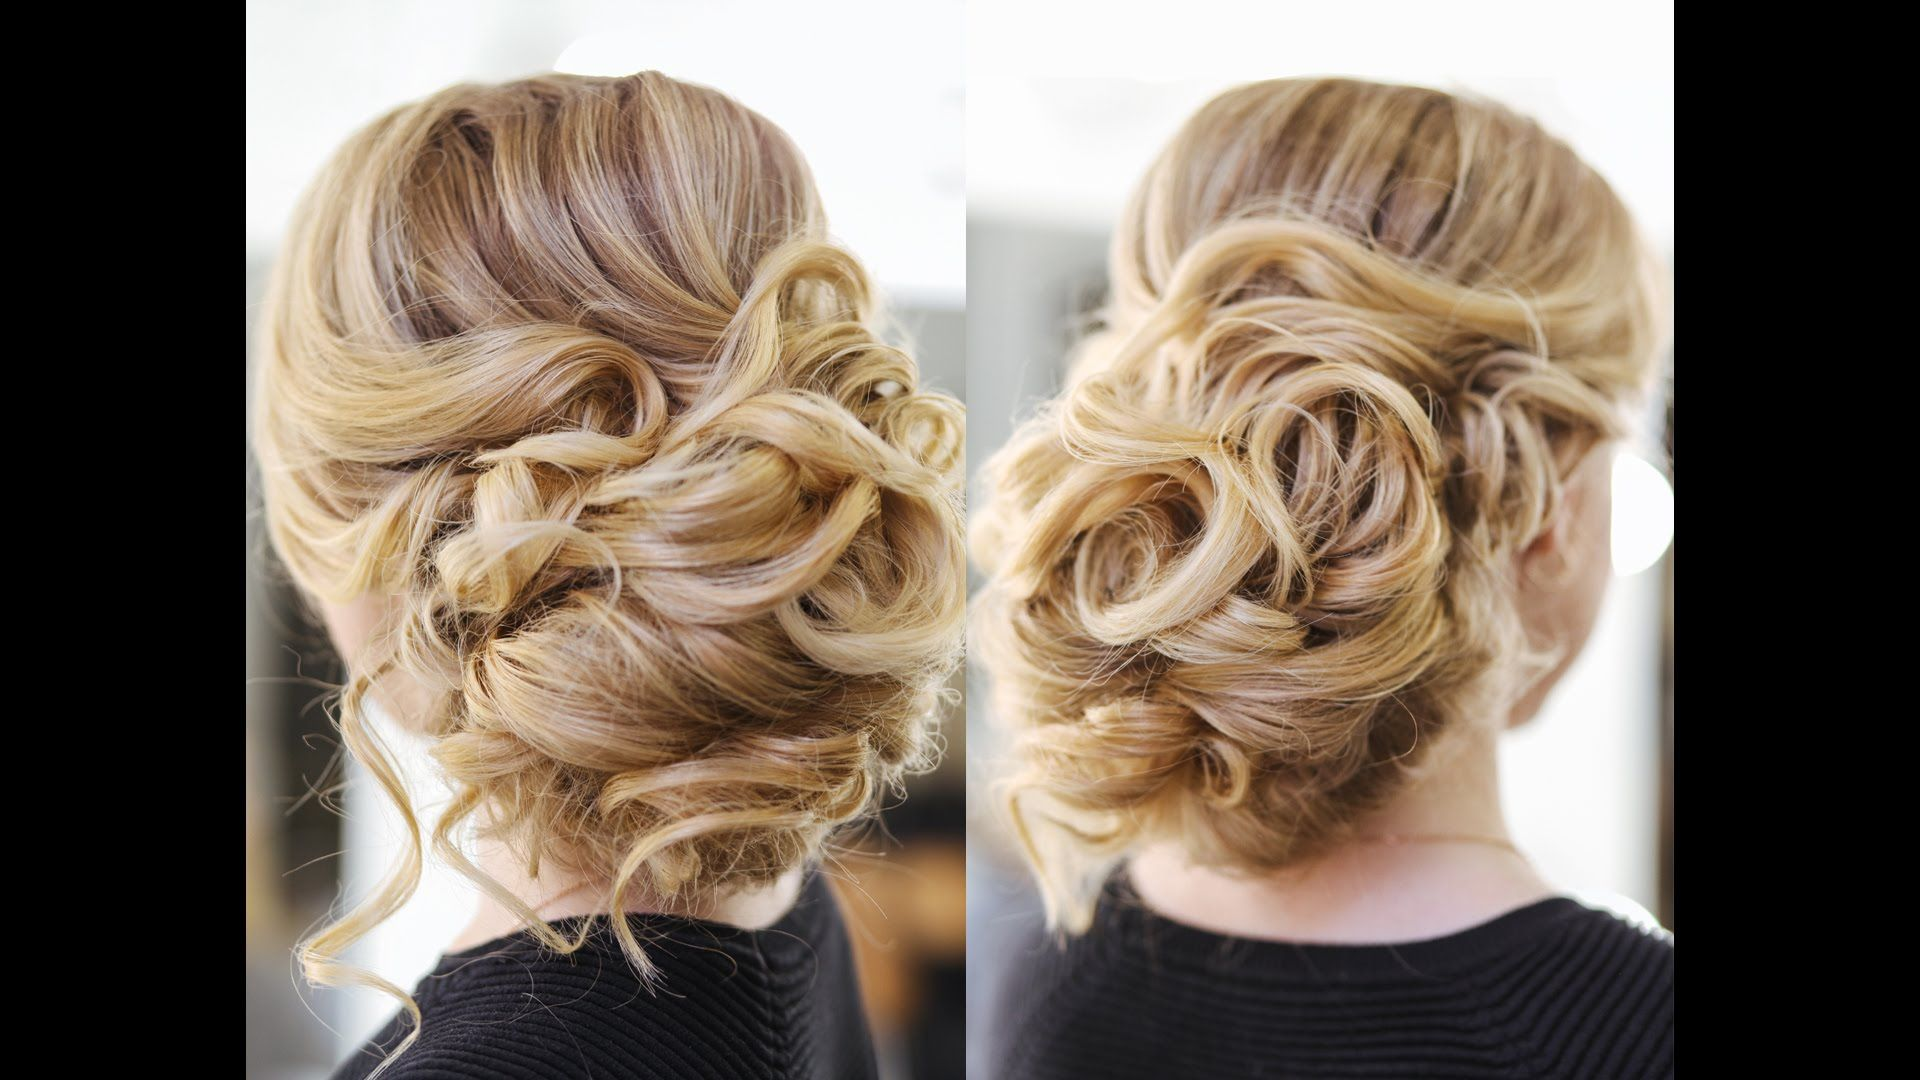 this video teaches how to do a beautiful, easy updo with big curls